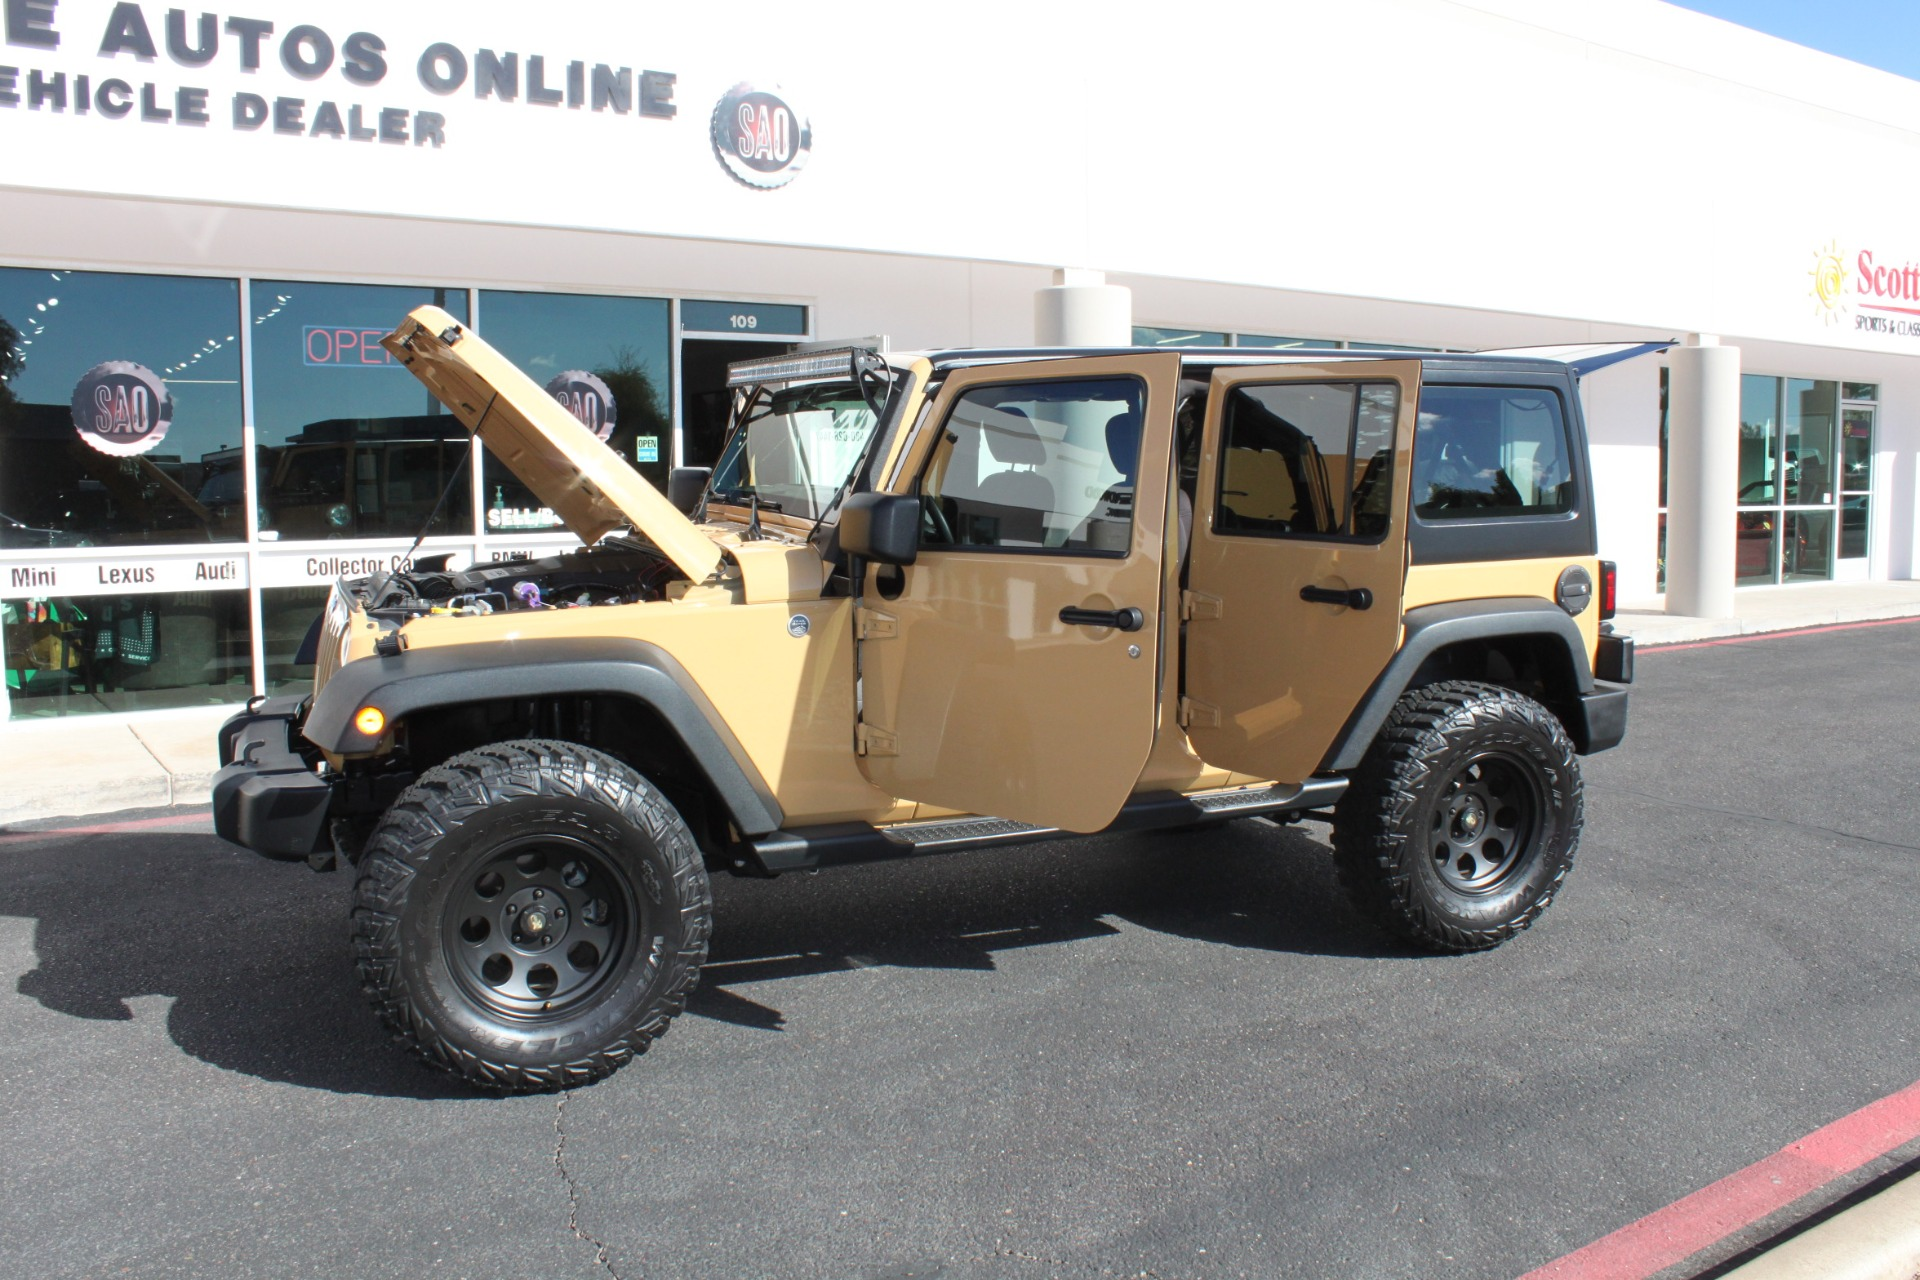 Used-2013-Jeep-Wrangler-Unlimited-Sport-4X4-Land-Cruiser